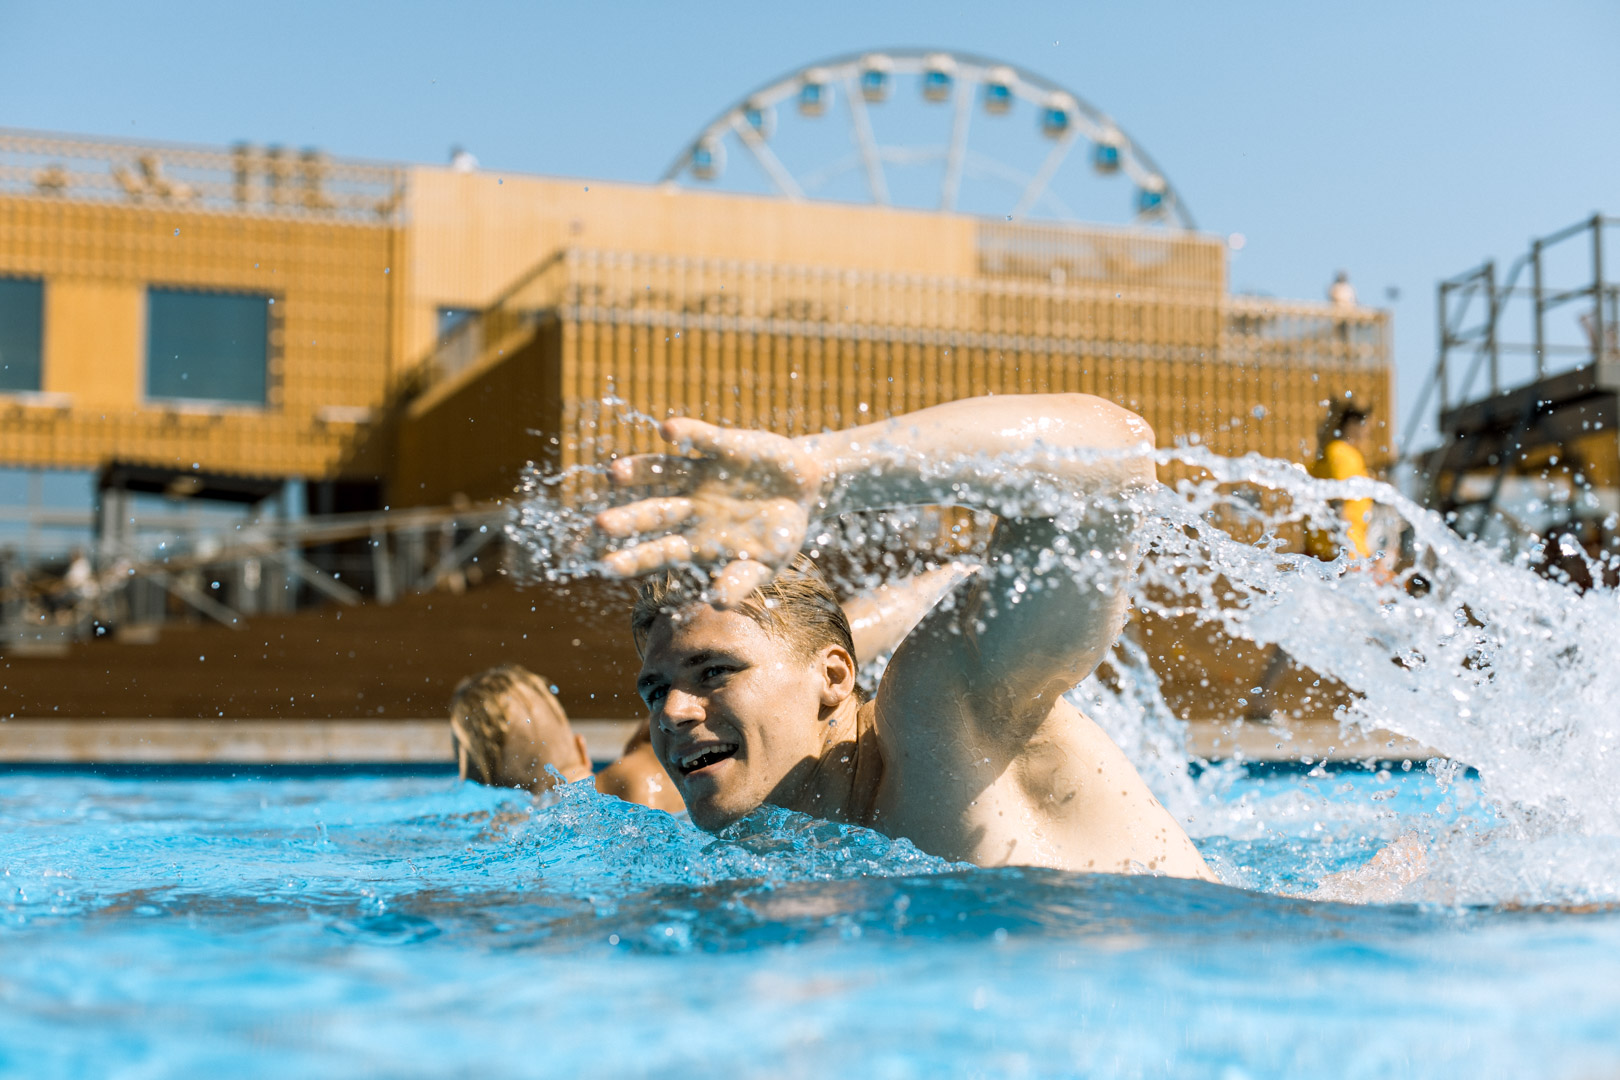 Allas sea pool brand photos by Jussi Ratilainen